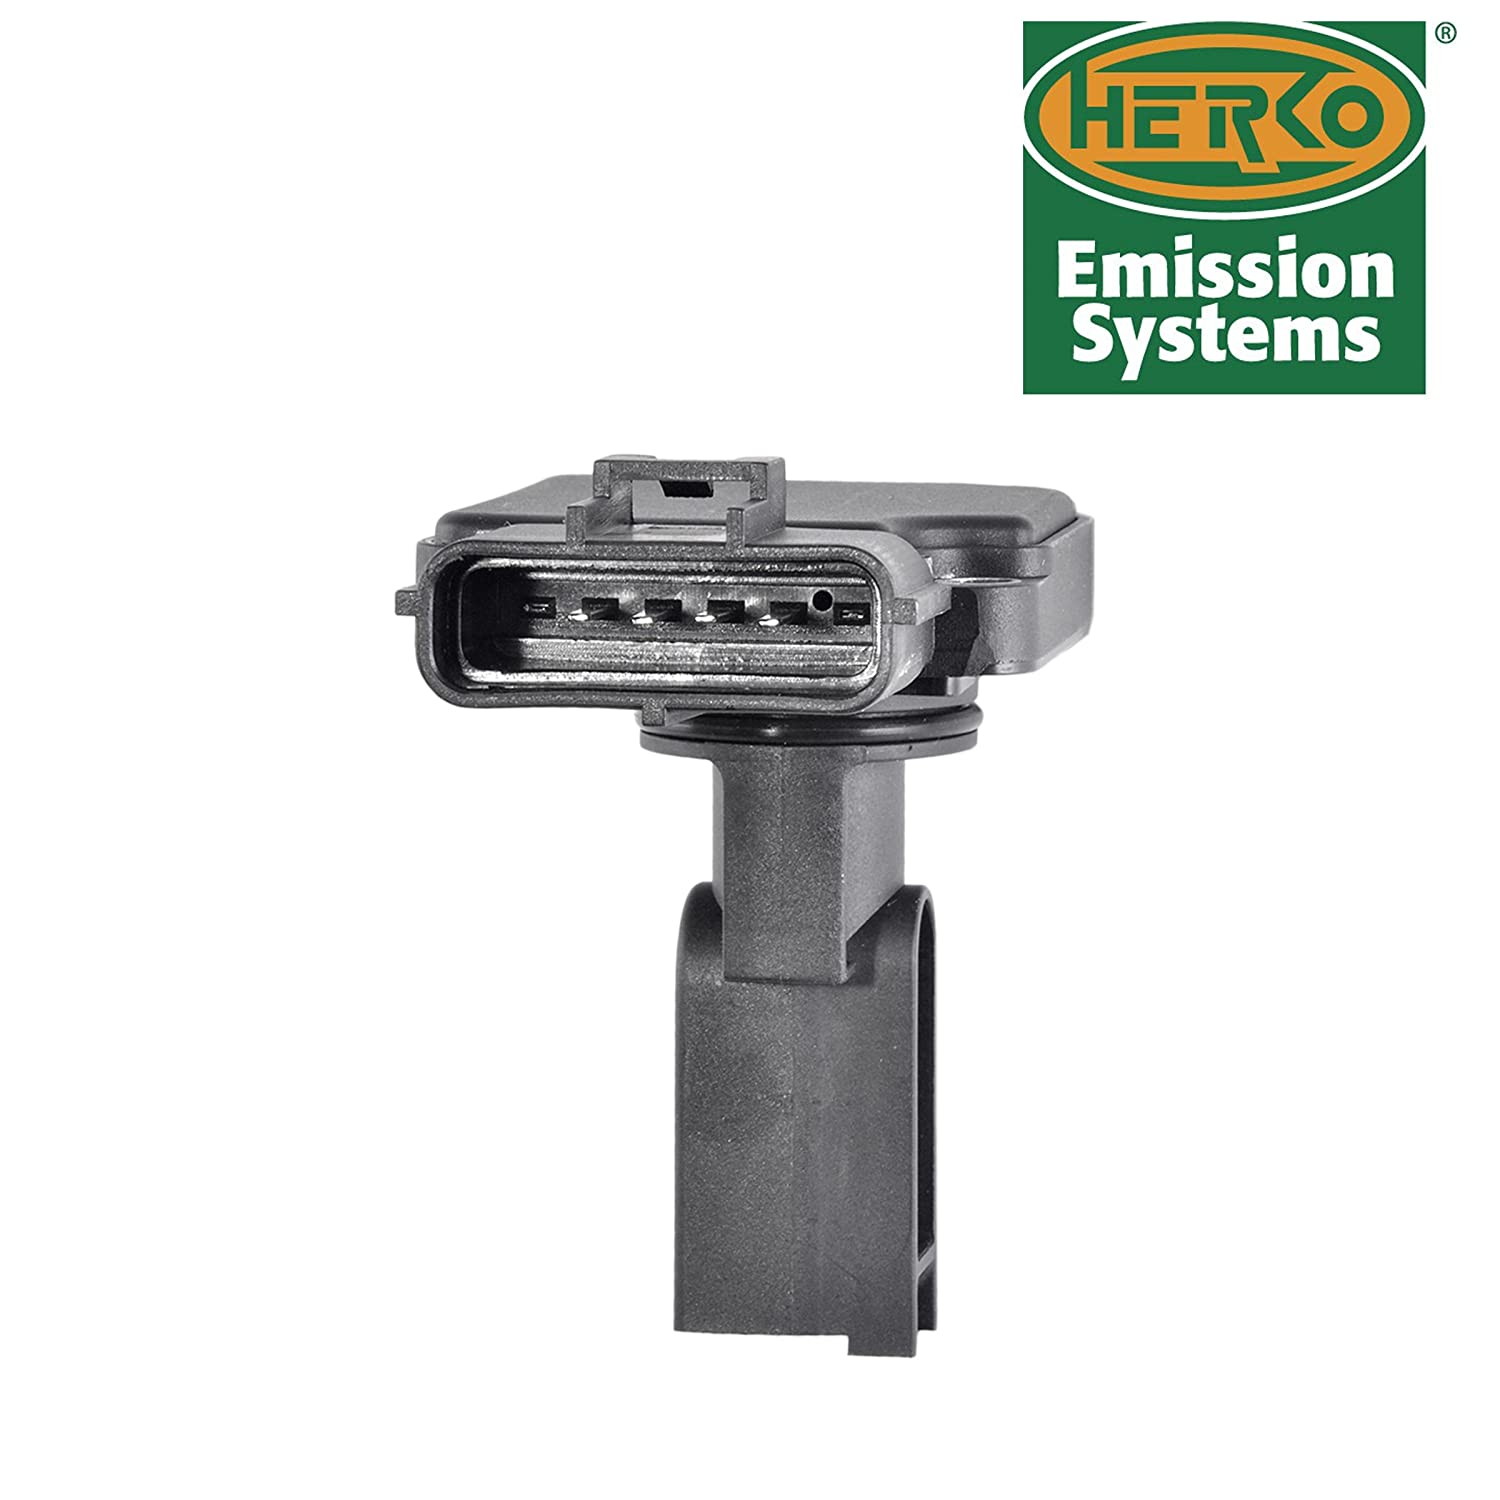 New Herko Mass Air Flow Sensor MAF206 For Ford /& Lincoln 1999-2003